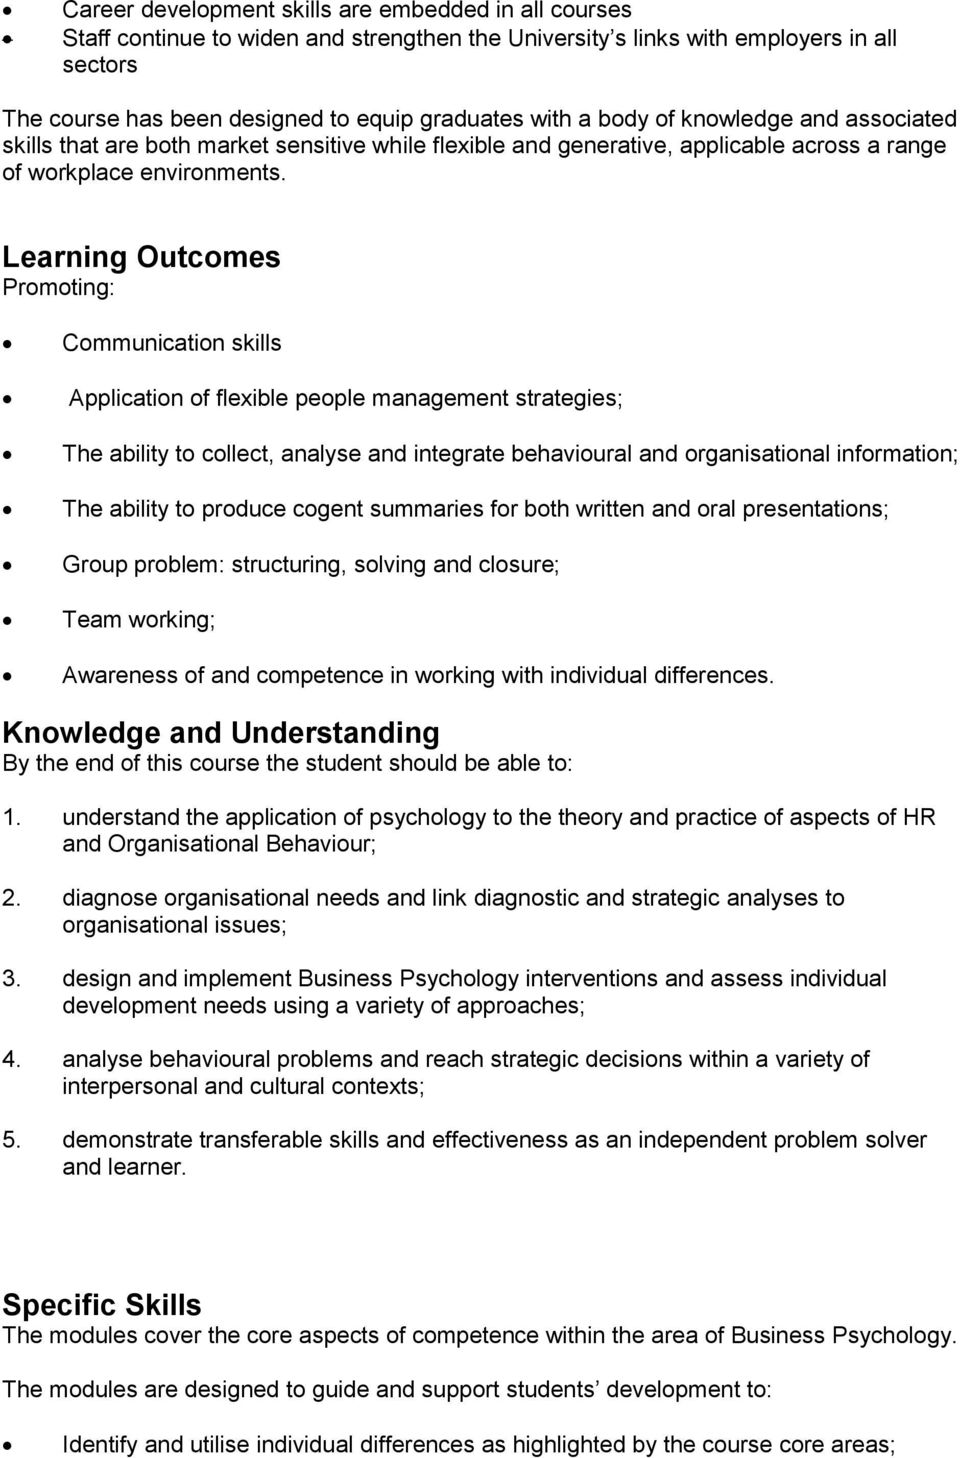 Learning Outcomes Promoting: Communication skills Application of flexible people management strategies; The ability to collect, analyse and integrate behavioural and organisational information; The